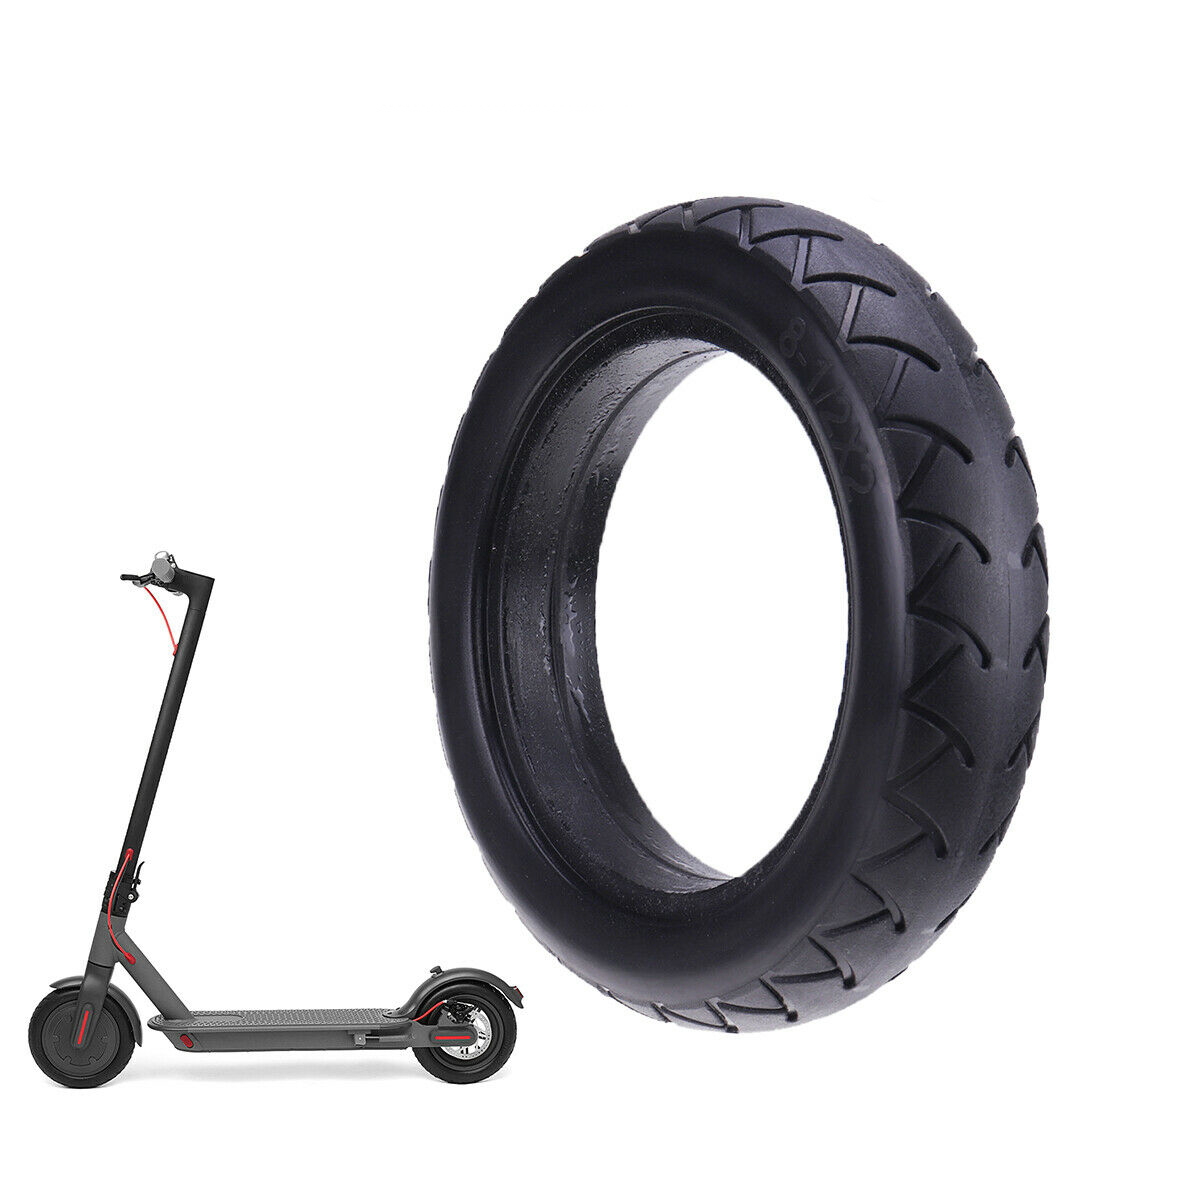 Tire Electric Scooter Thickening Solid Skateboard Tyre Wheels 8 1/2X2 Avoid Pneumatic Tyres Electric Bicycle Accessories Tires